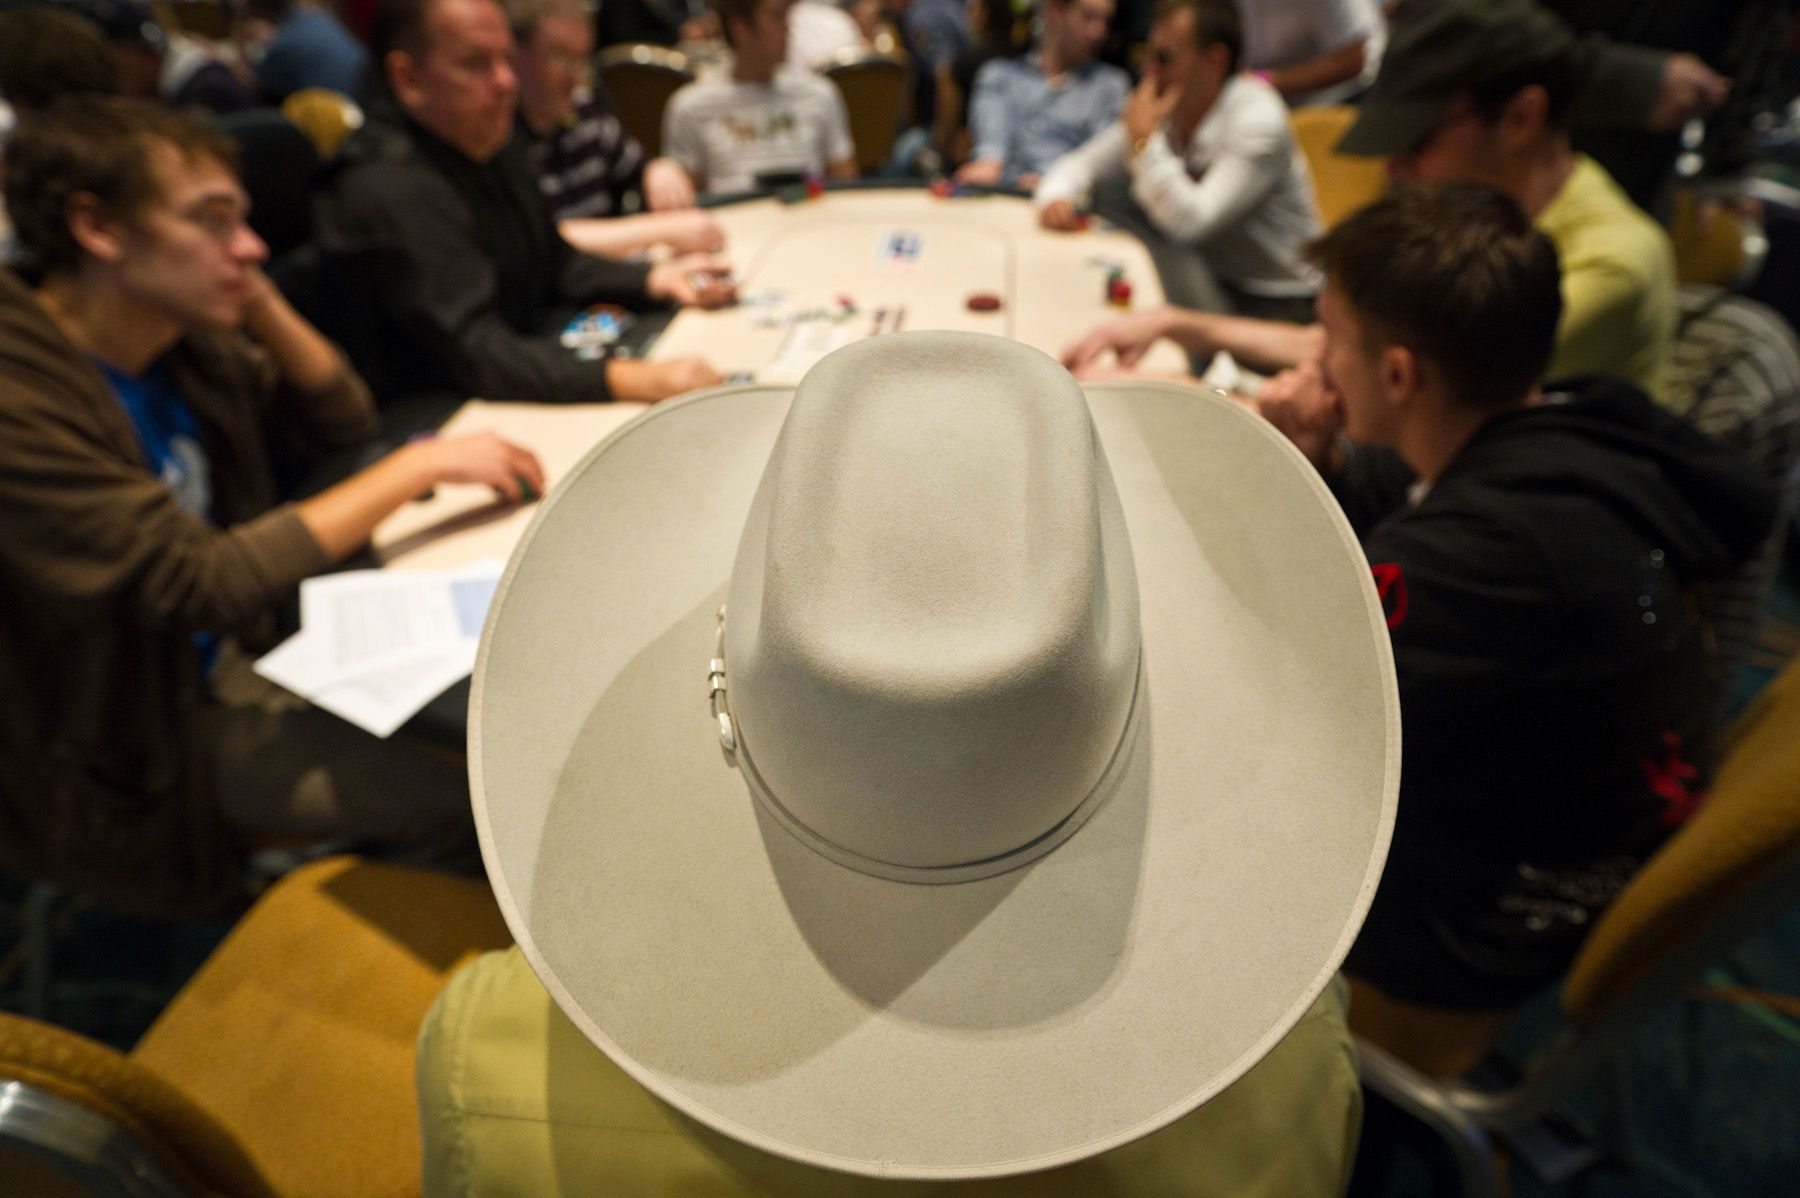 The God Father of Poker. Doyle Brunson